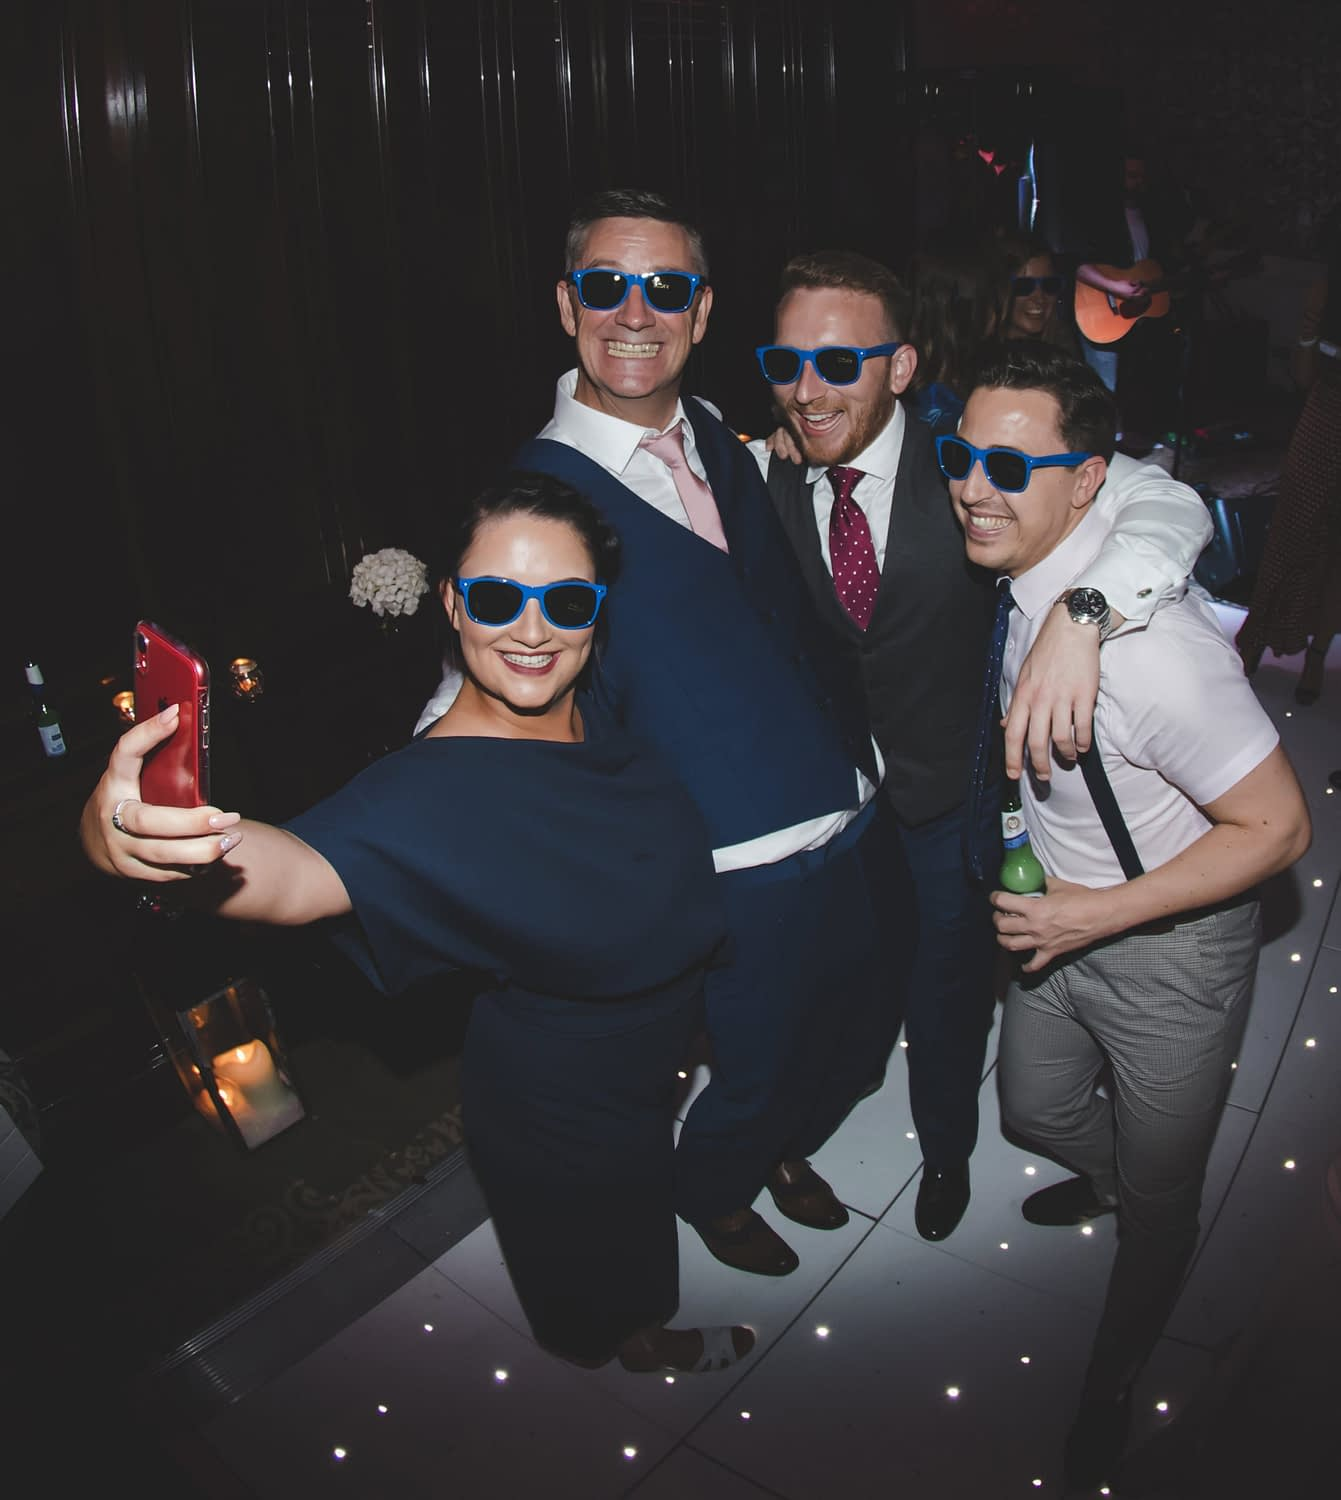 group of four wearing sunglasses indoors taking a selfie